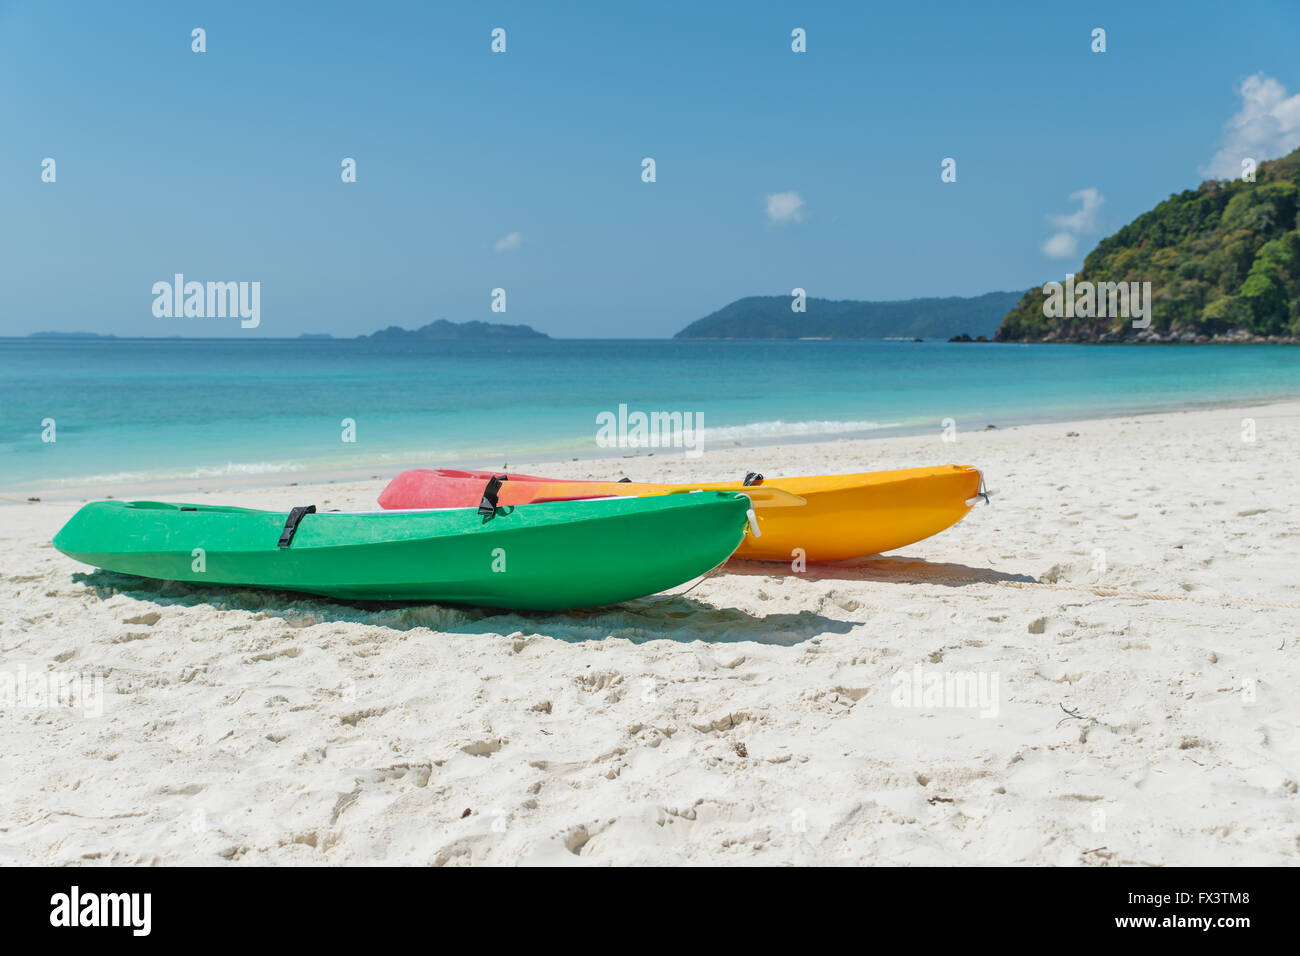 Summer, Travel, Vacation and Holiday concept - Colorful kayaks on the tropical beach, Thailand Stock Photo